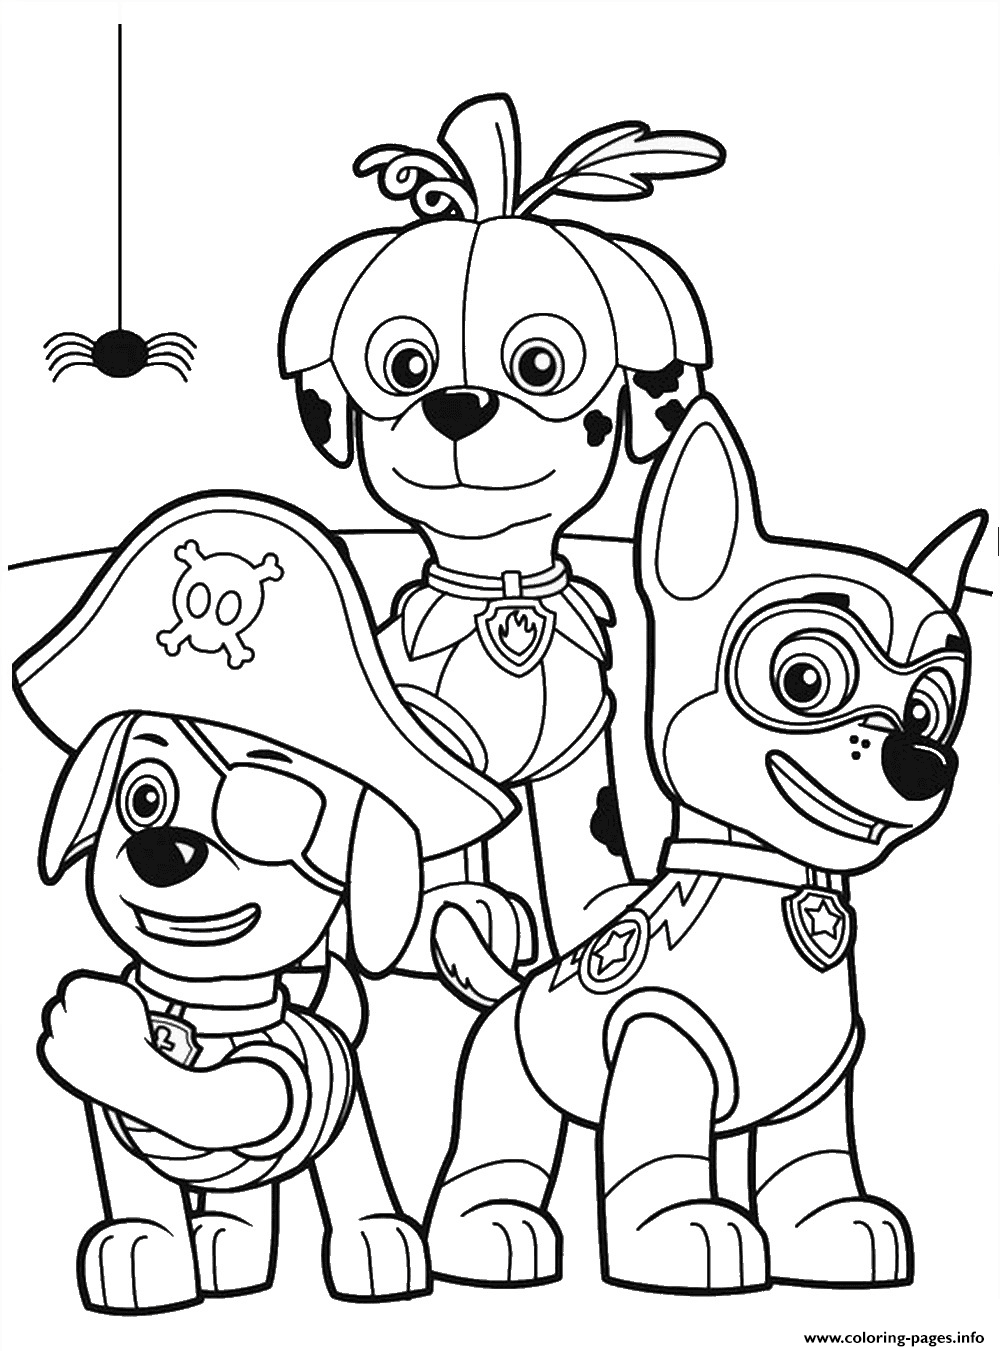 Halloween Cartoon Coloring Pages.Paw Patrol Halloween Party Cartoon Coloring Pages Printable